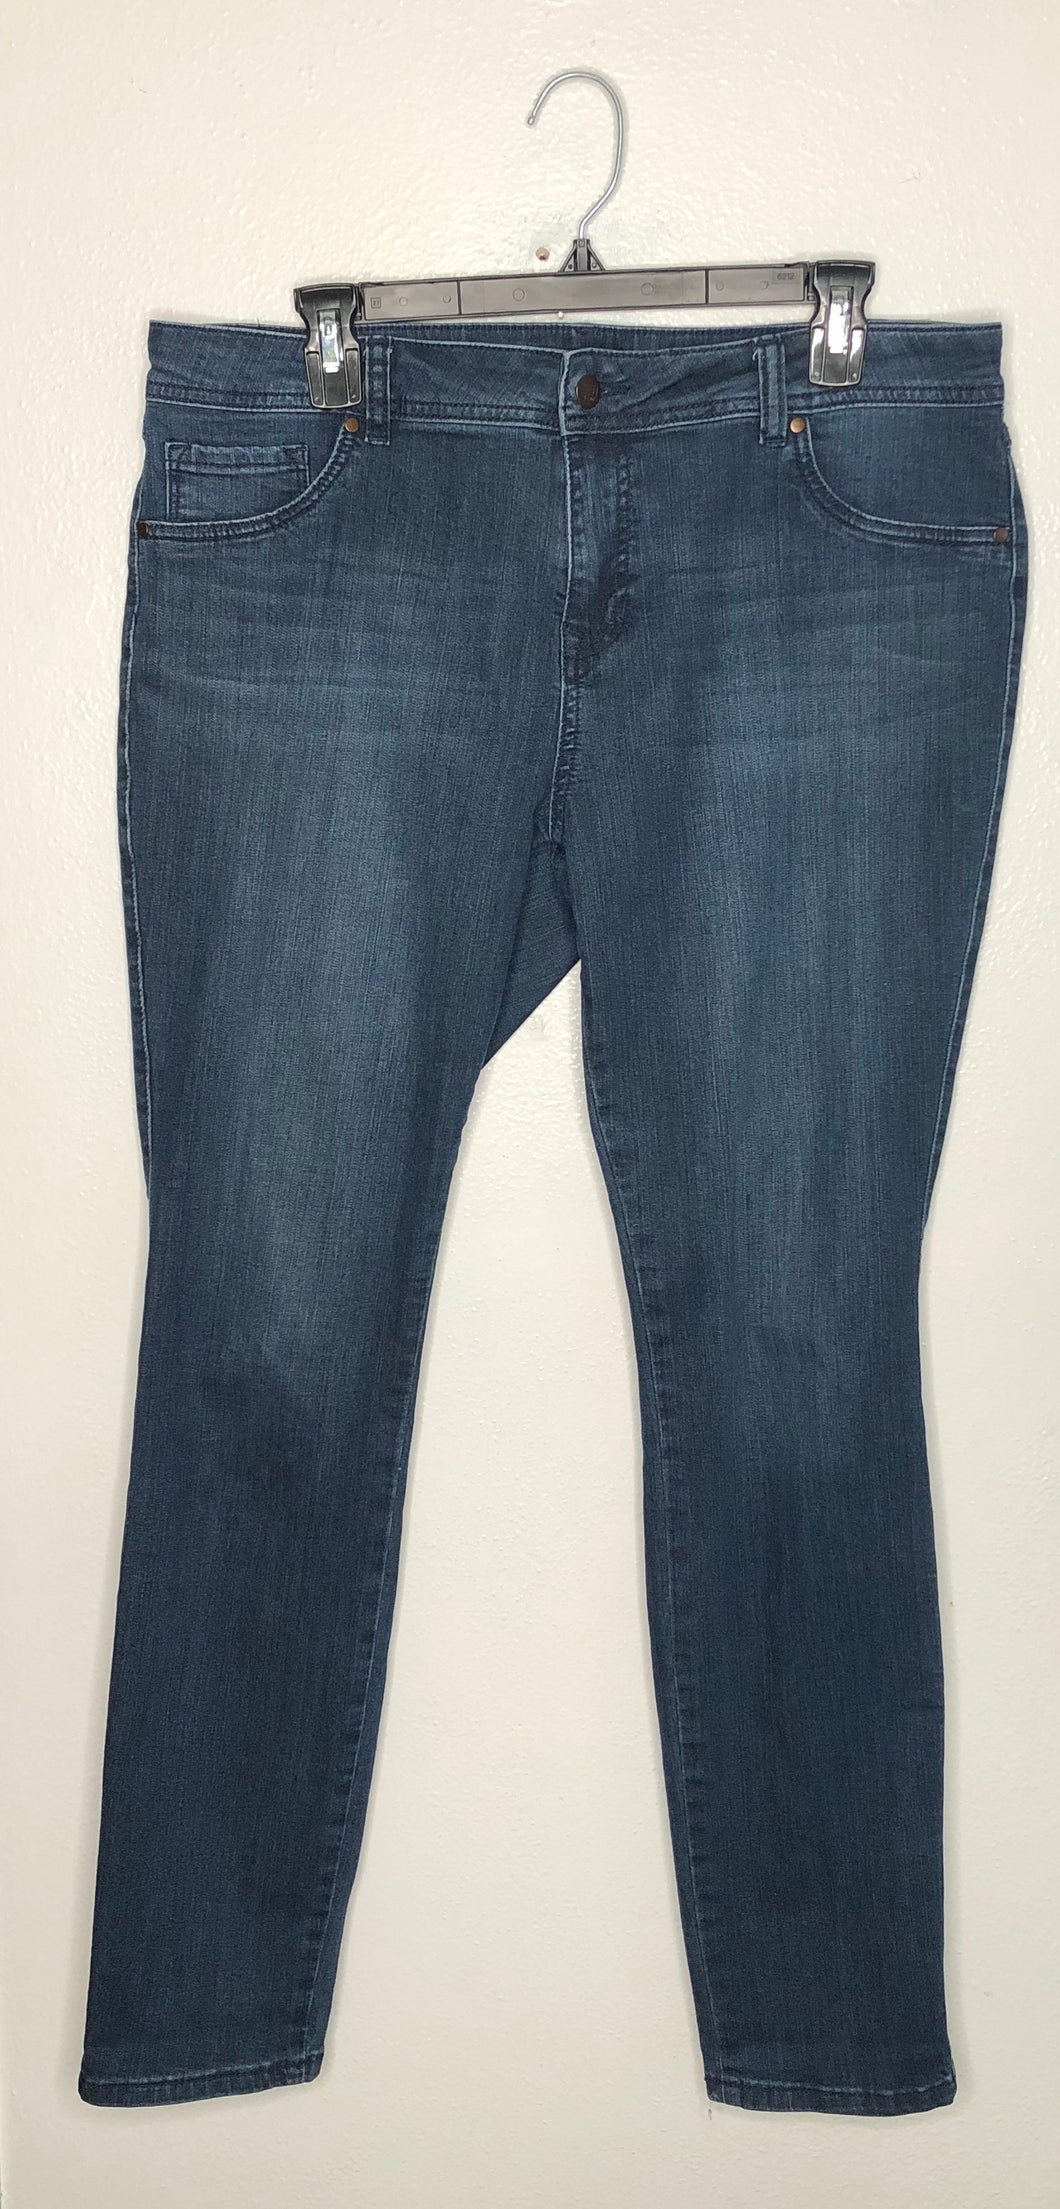 d. jeans Dark Denim Skinny Fit Sz 14